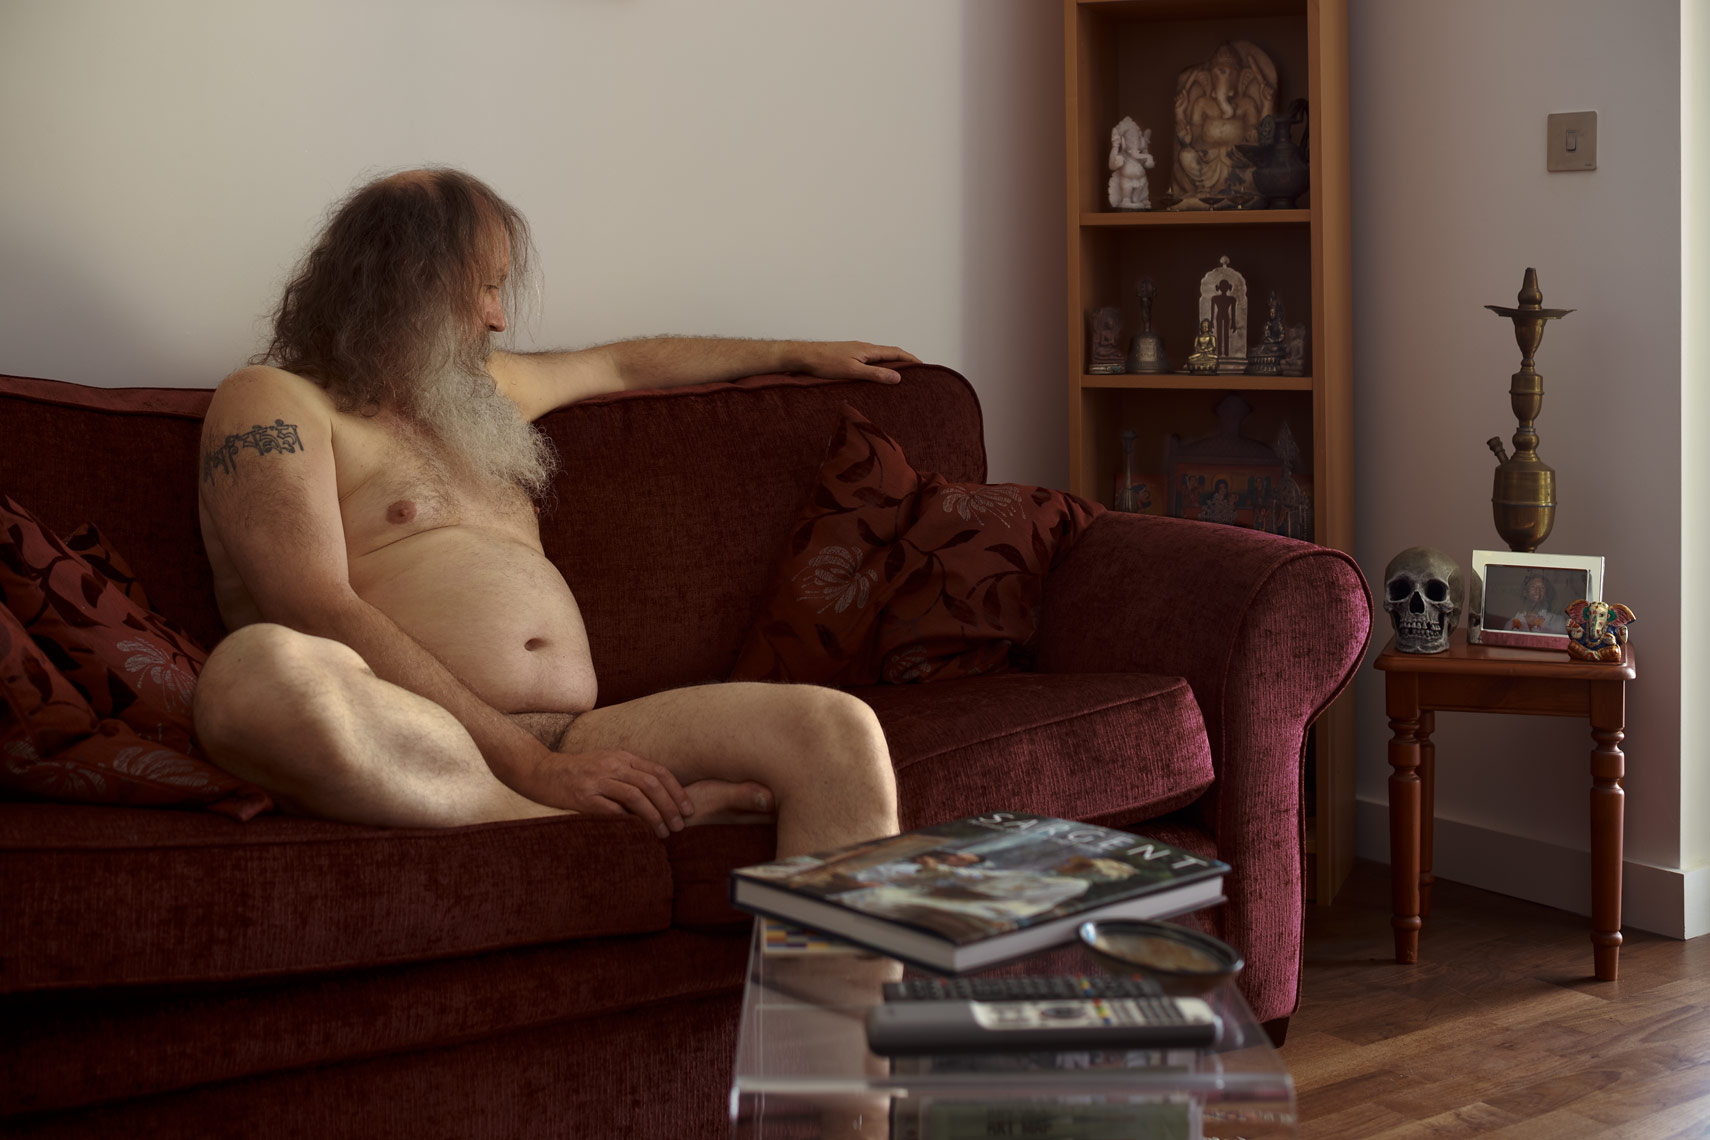 Domestic Nudes 6 - Peter - by Simon Stanmore.jpg